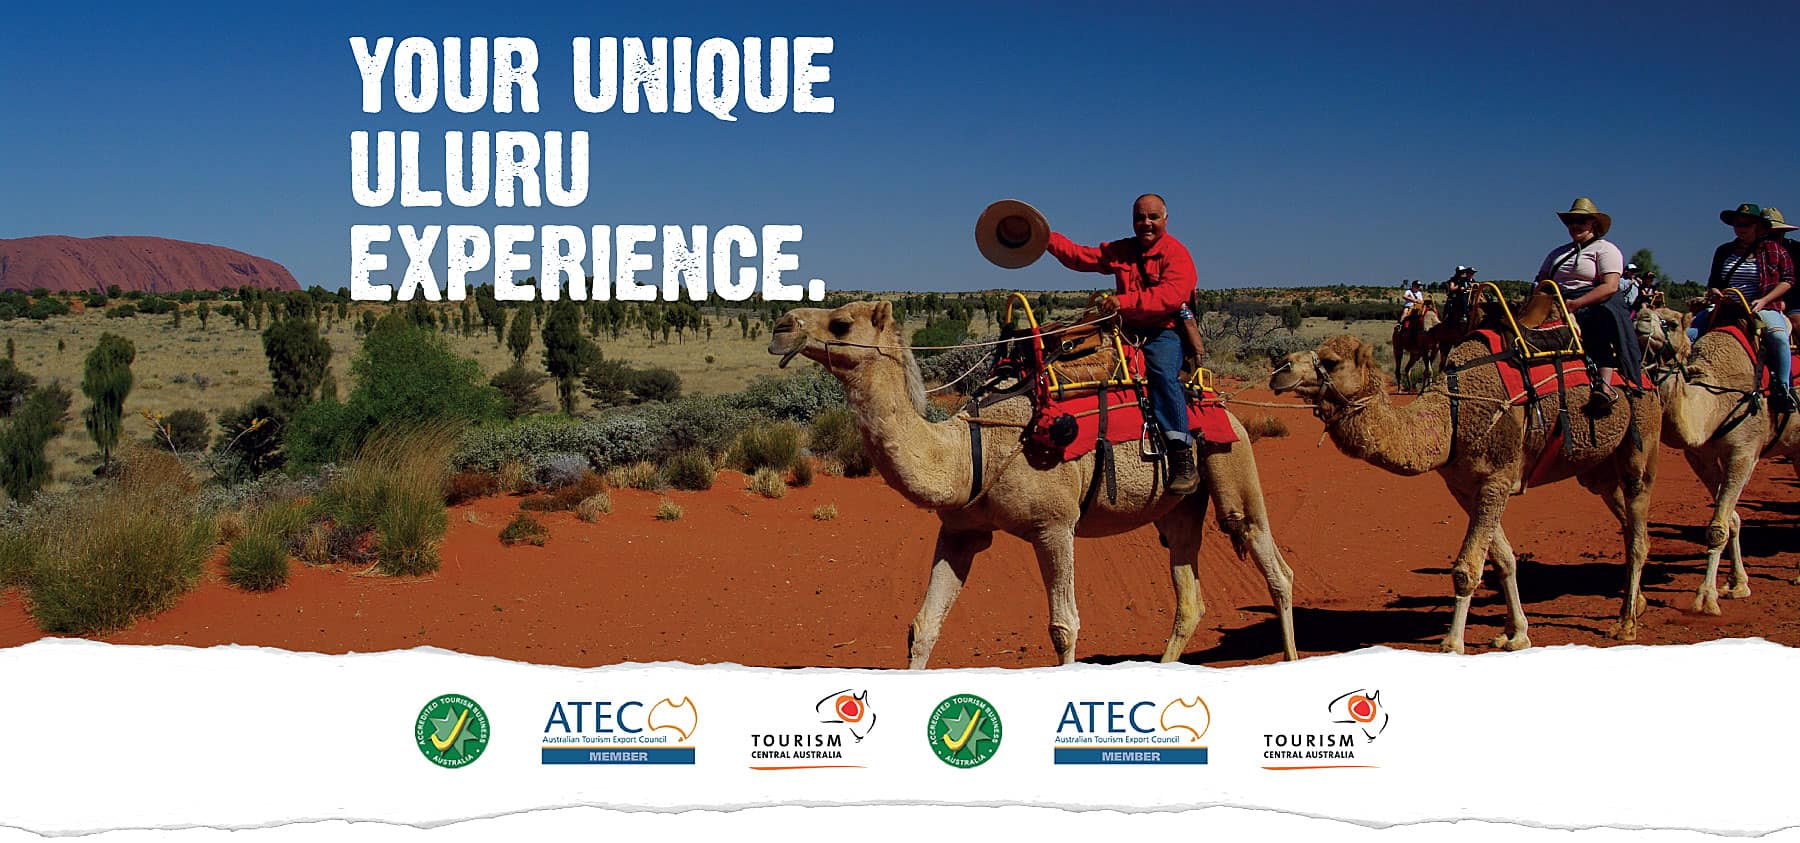 Uluru Camel Tours Your Unique Uluru Experience